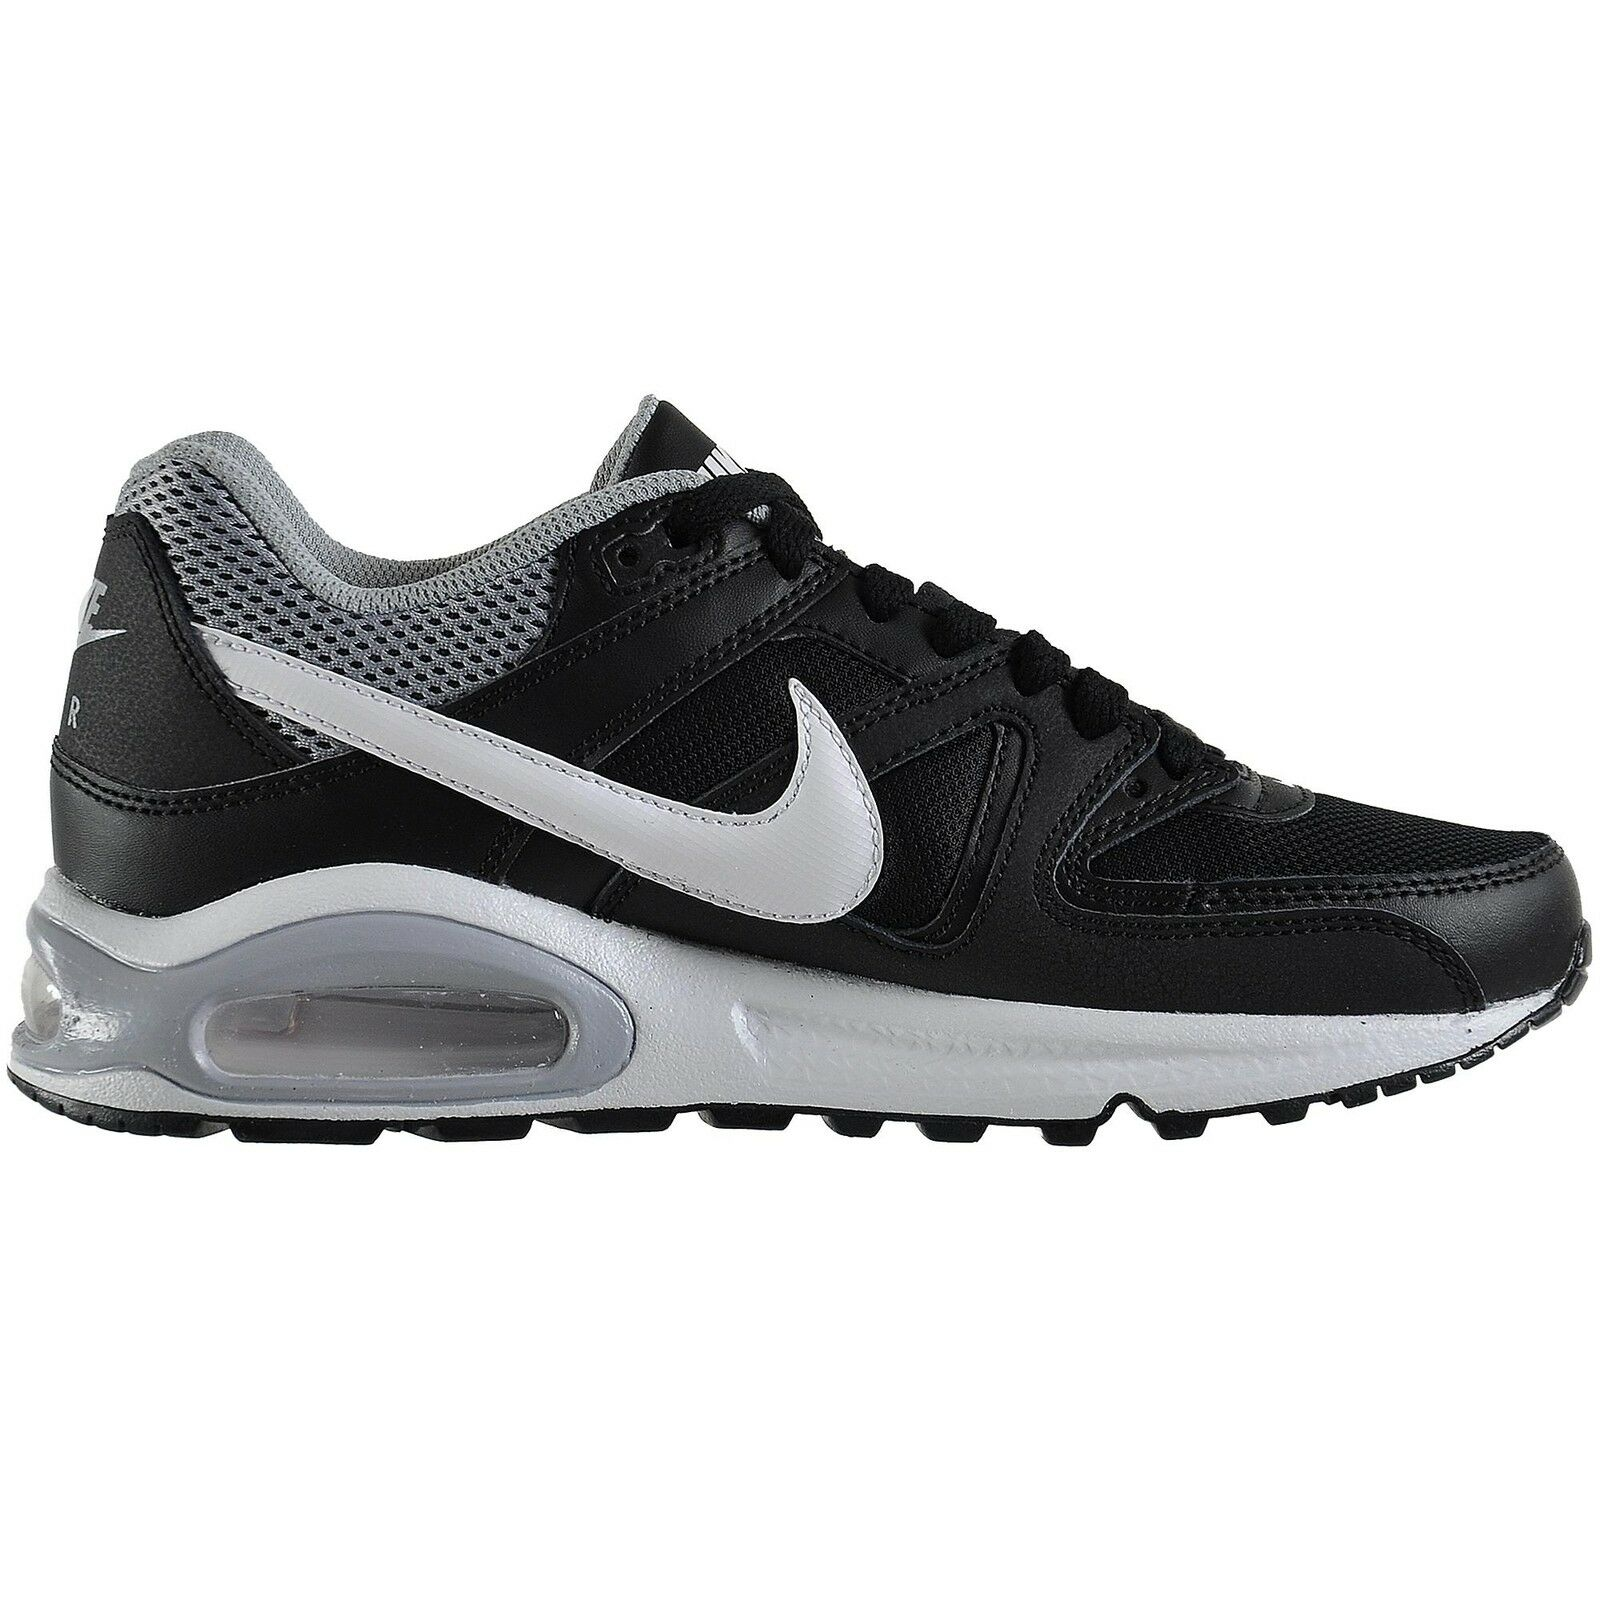 1bc79ebee6c6a cheapest zapatillas nike hombre urbanas air max command gris d23af ba2ee   australia nike air max command9 9 junior tamaños max air e18d52 840d5 56669